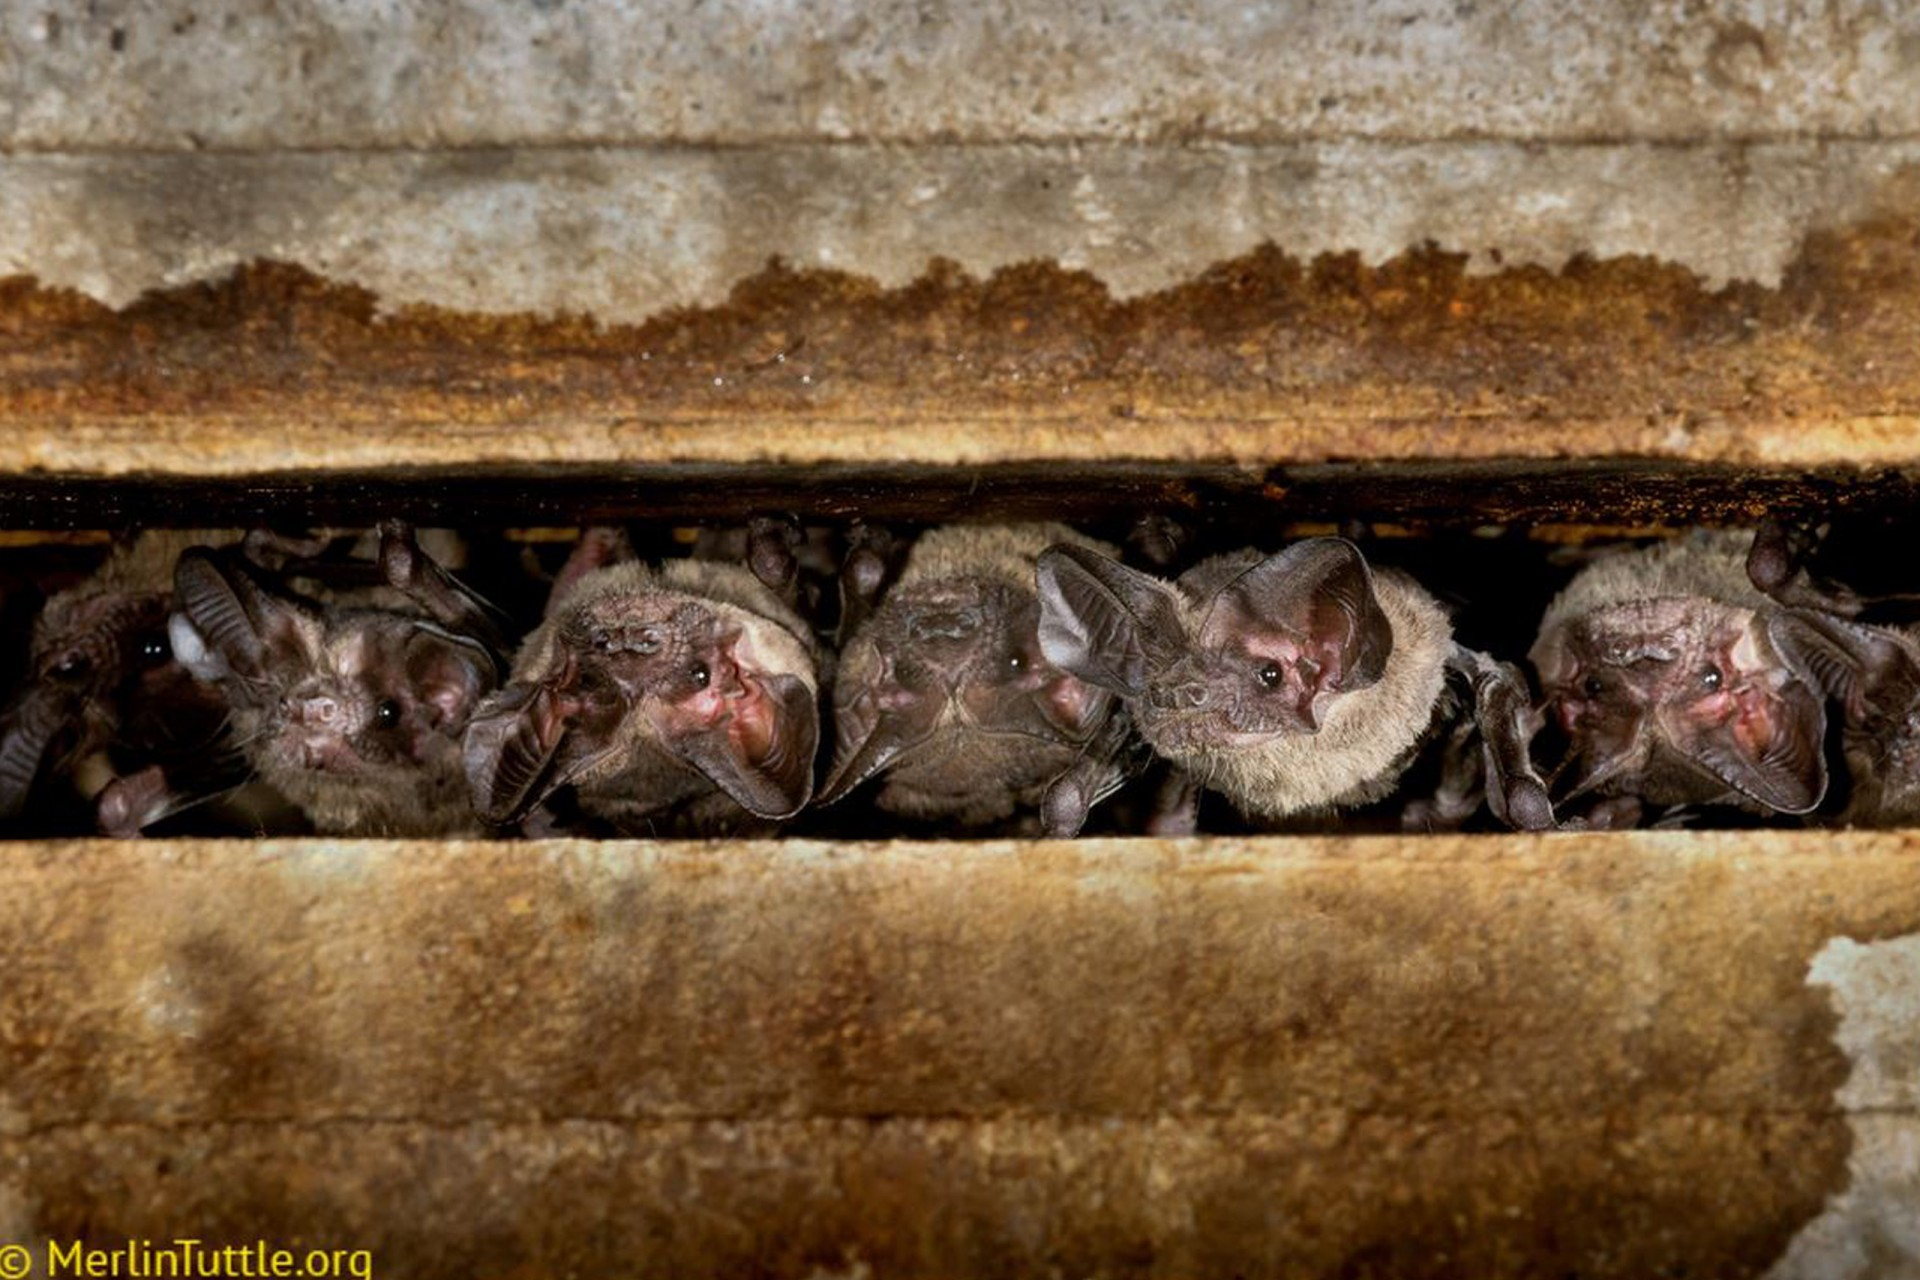 Bats use private and social information as they hunt